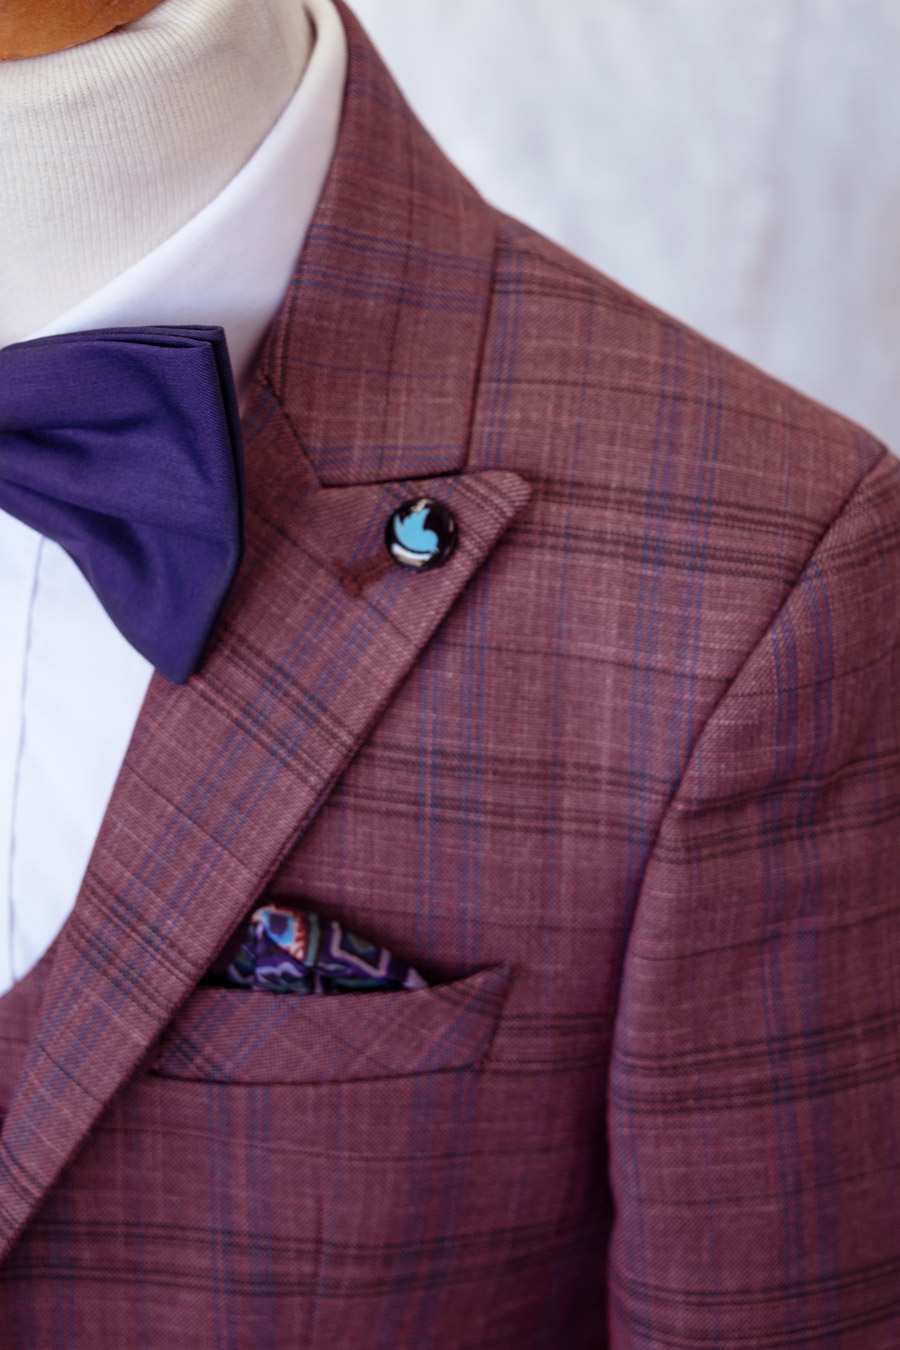 boy's burgundy and navy suit 4 pieces set